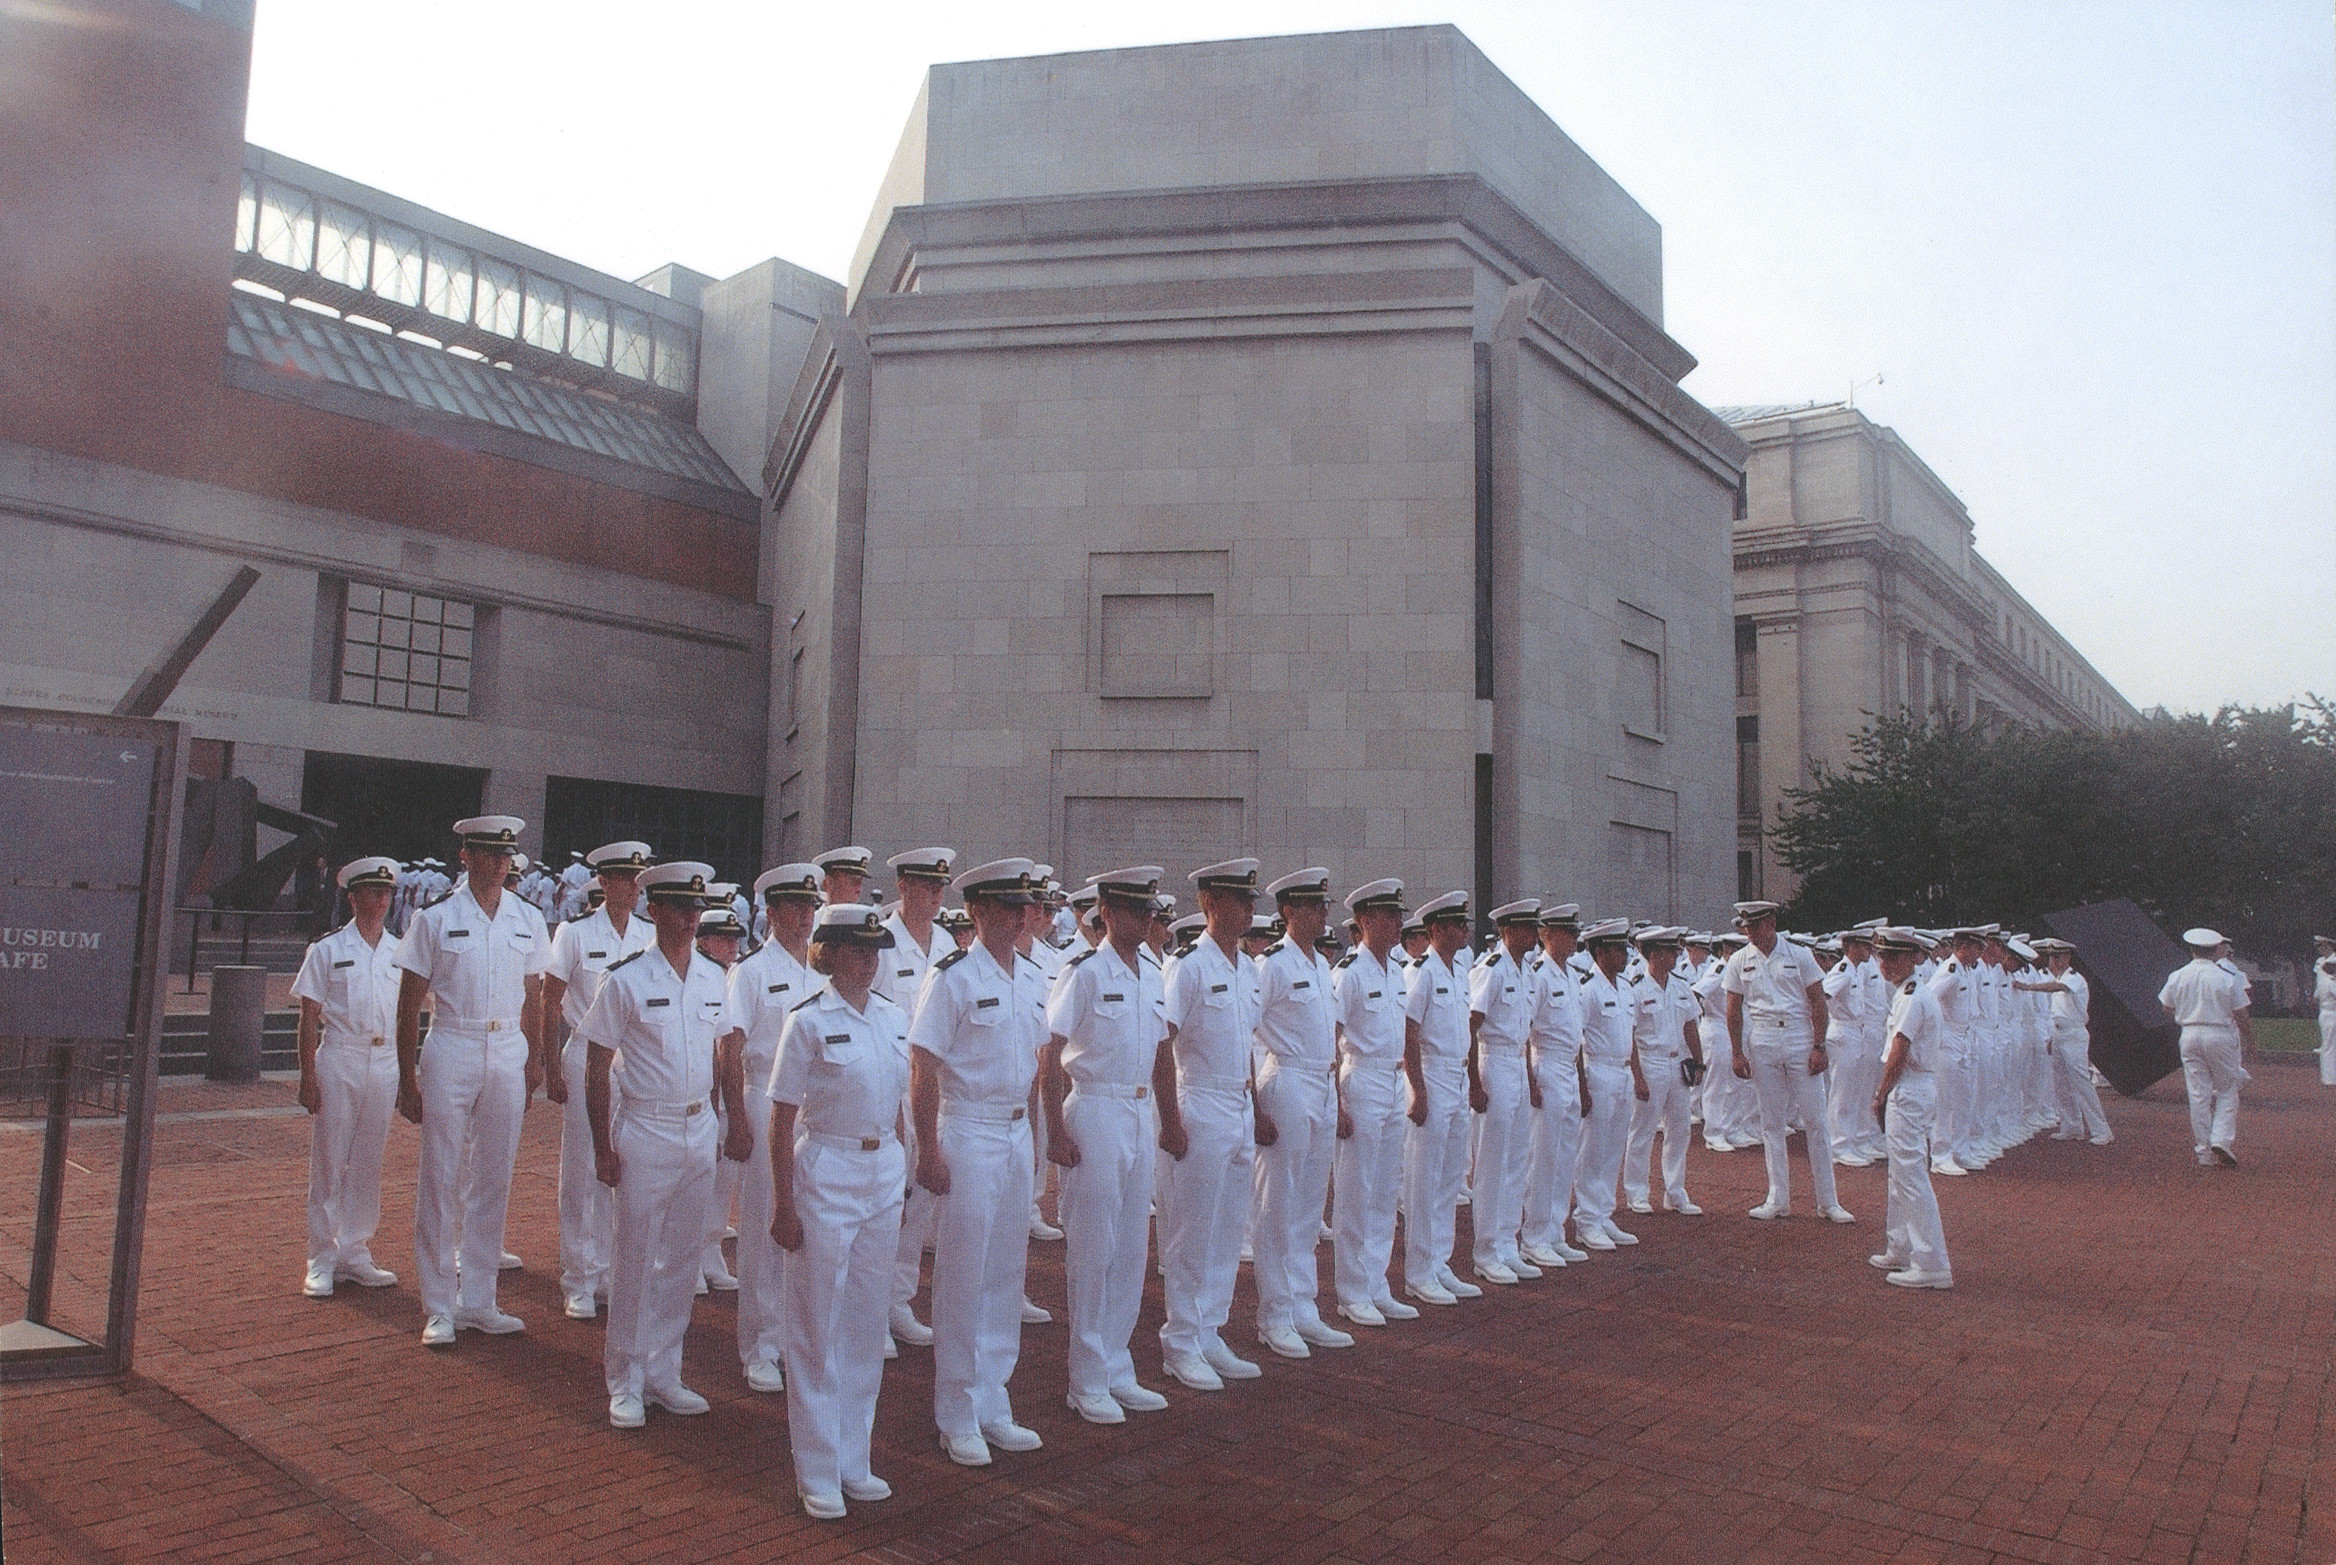 U.S. Naval Academy midshipmen stand in formation in front of the U.S. Holocaust Memorial Museum.